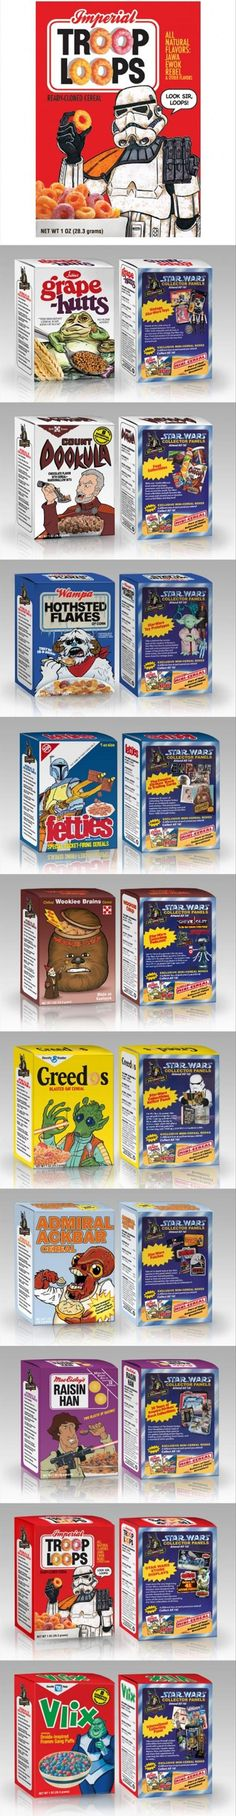 I would buy all of these just because they are Star Wars even though I'm not a big fan of cereal